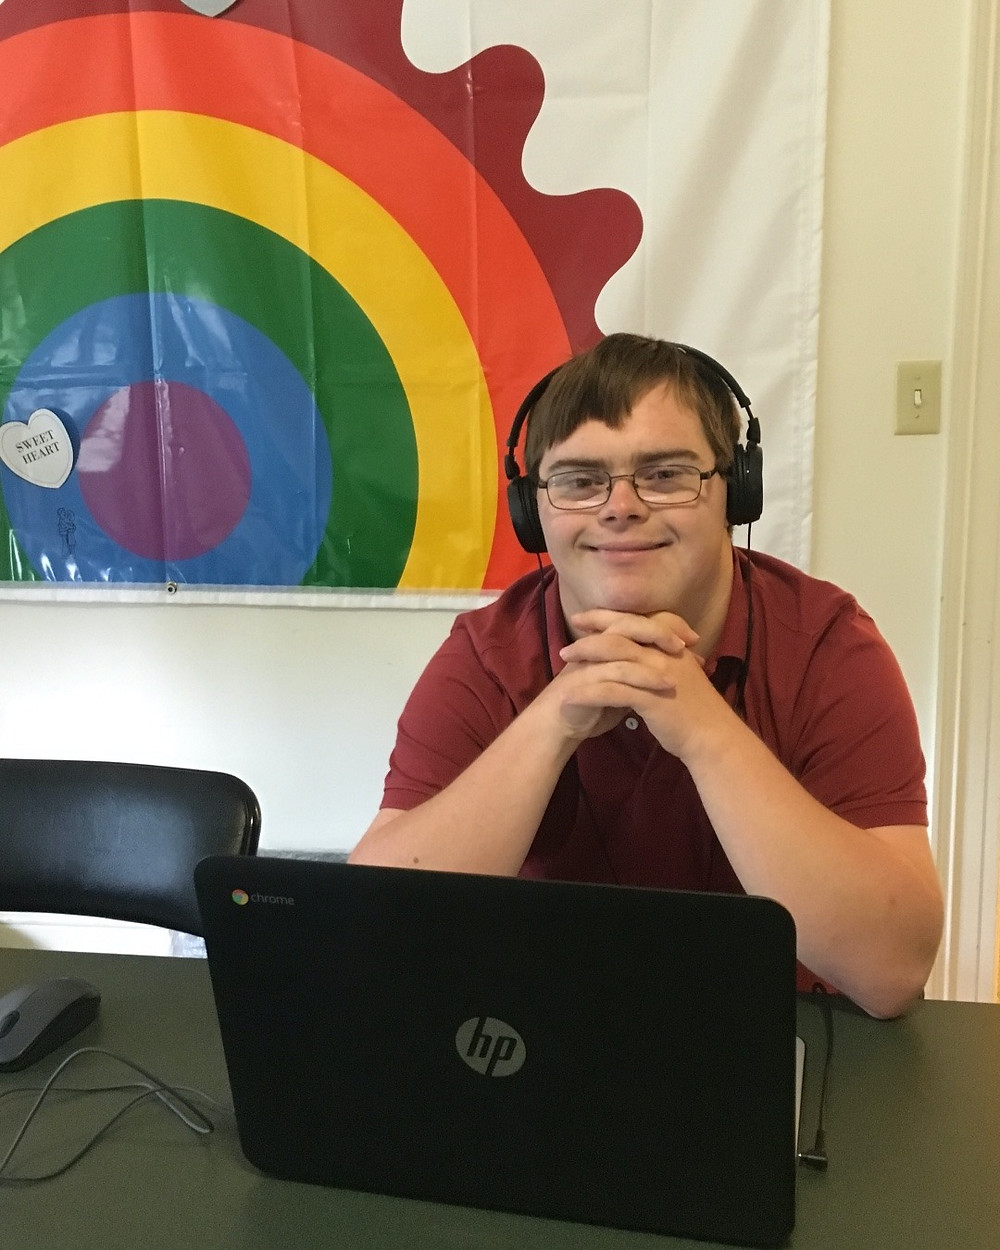 Image of William Duffy, wearing headphones and a red polo shirt, crossing his hands as he sits in front of an open laptop; the rainbow Circles tapestry is visible in the background.